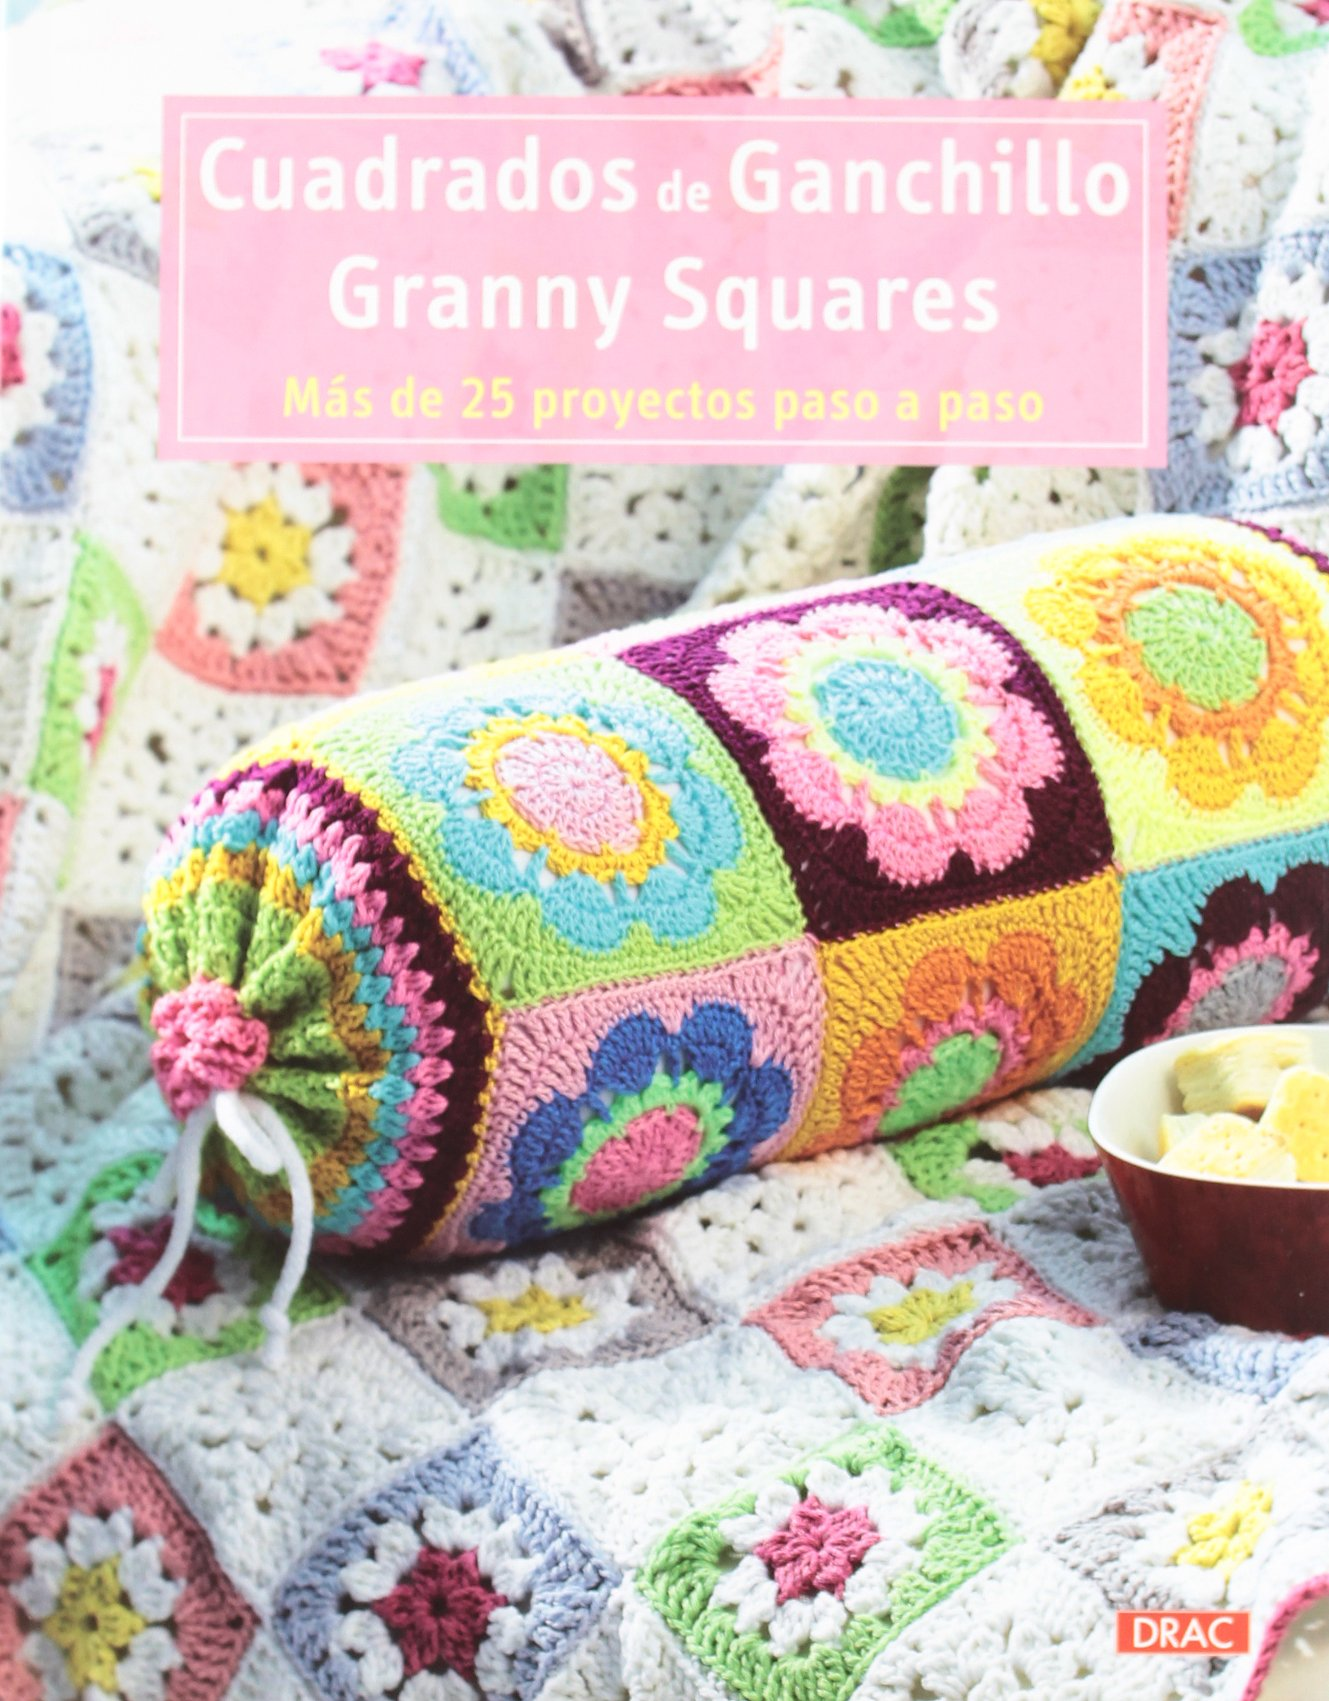 Cuadrados de ganchillo / Granny Squares: Más de 25 proyectos paso a paso / More than 25 projects step by step (Spanish Edition): Stephanie Gohr, ...